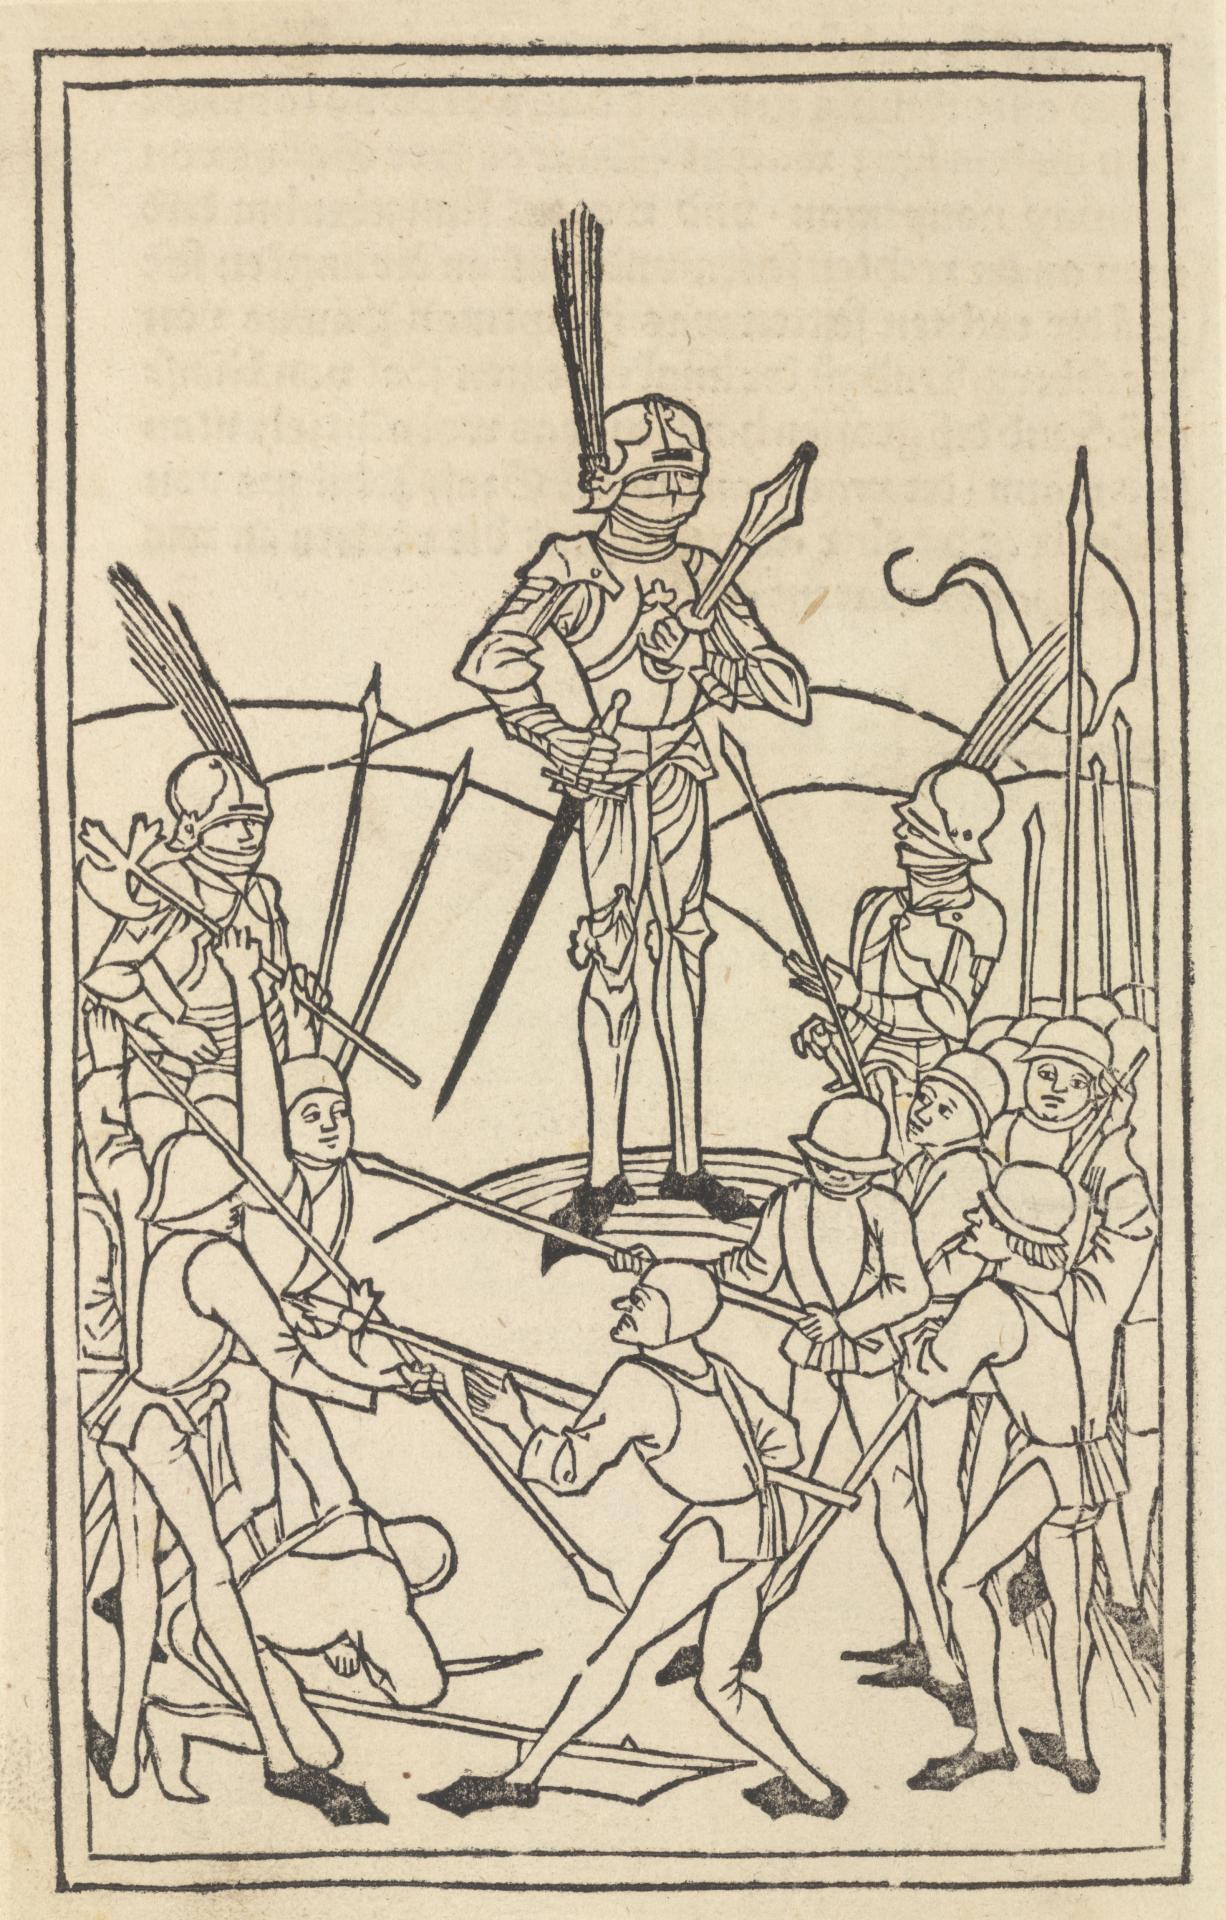 Untitled, illustration to Thomas Lirer's Chronica von allen Königen und Kaisern (scene depicting knight in armour looking down upon sparring soldiers)